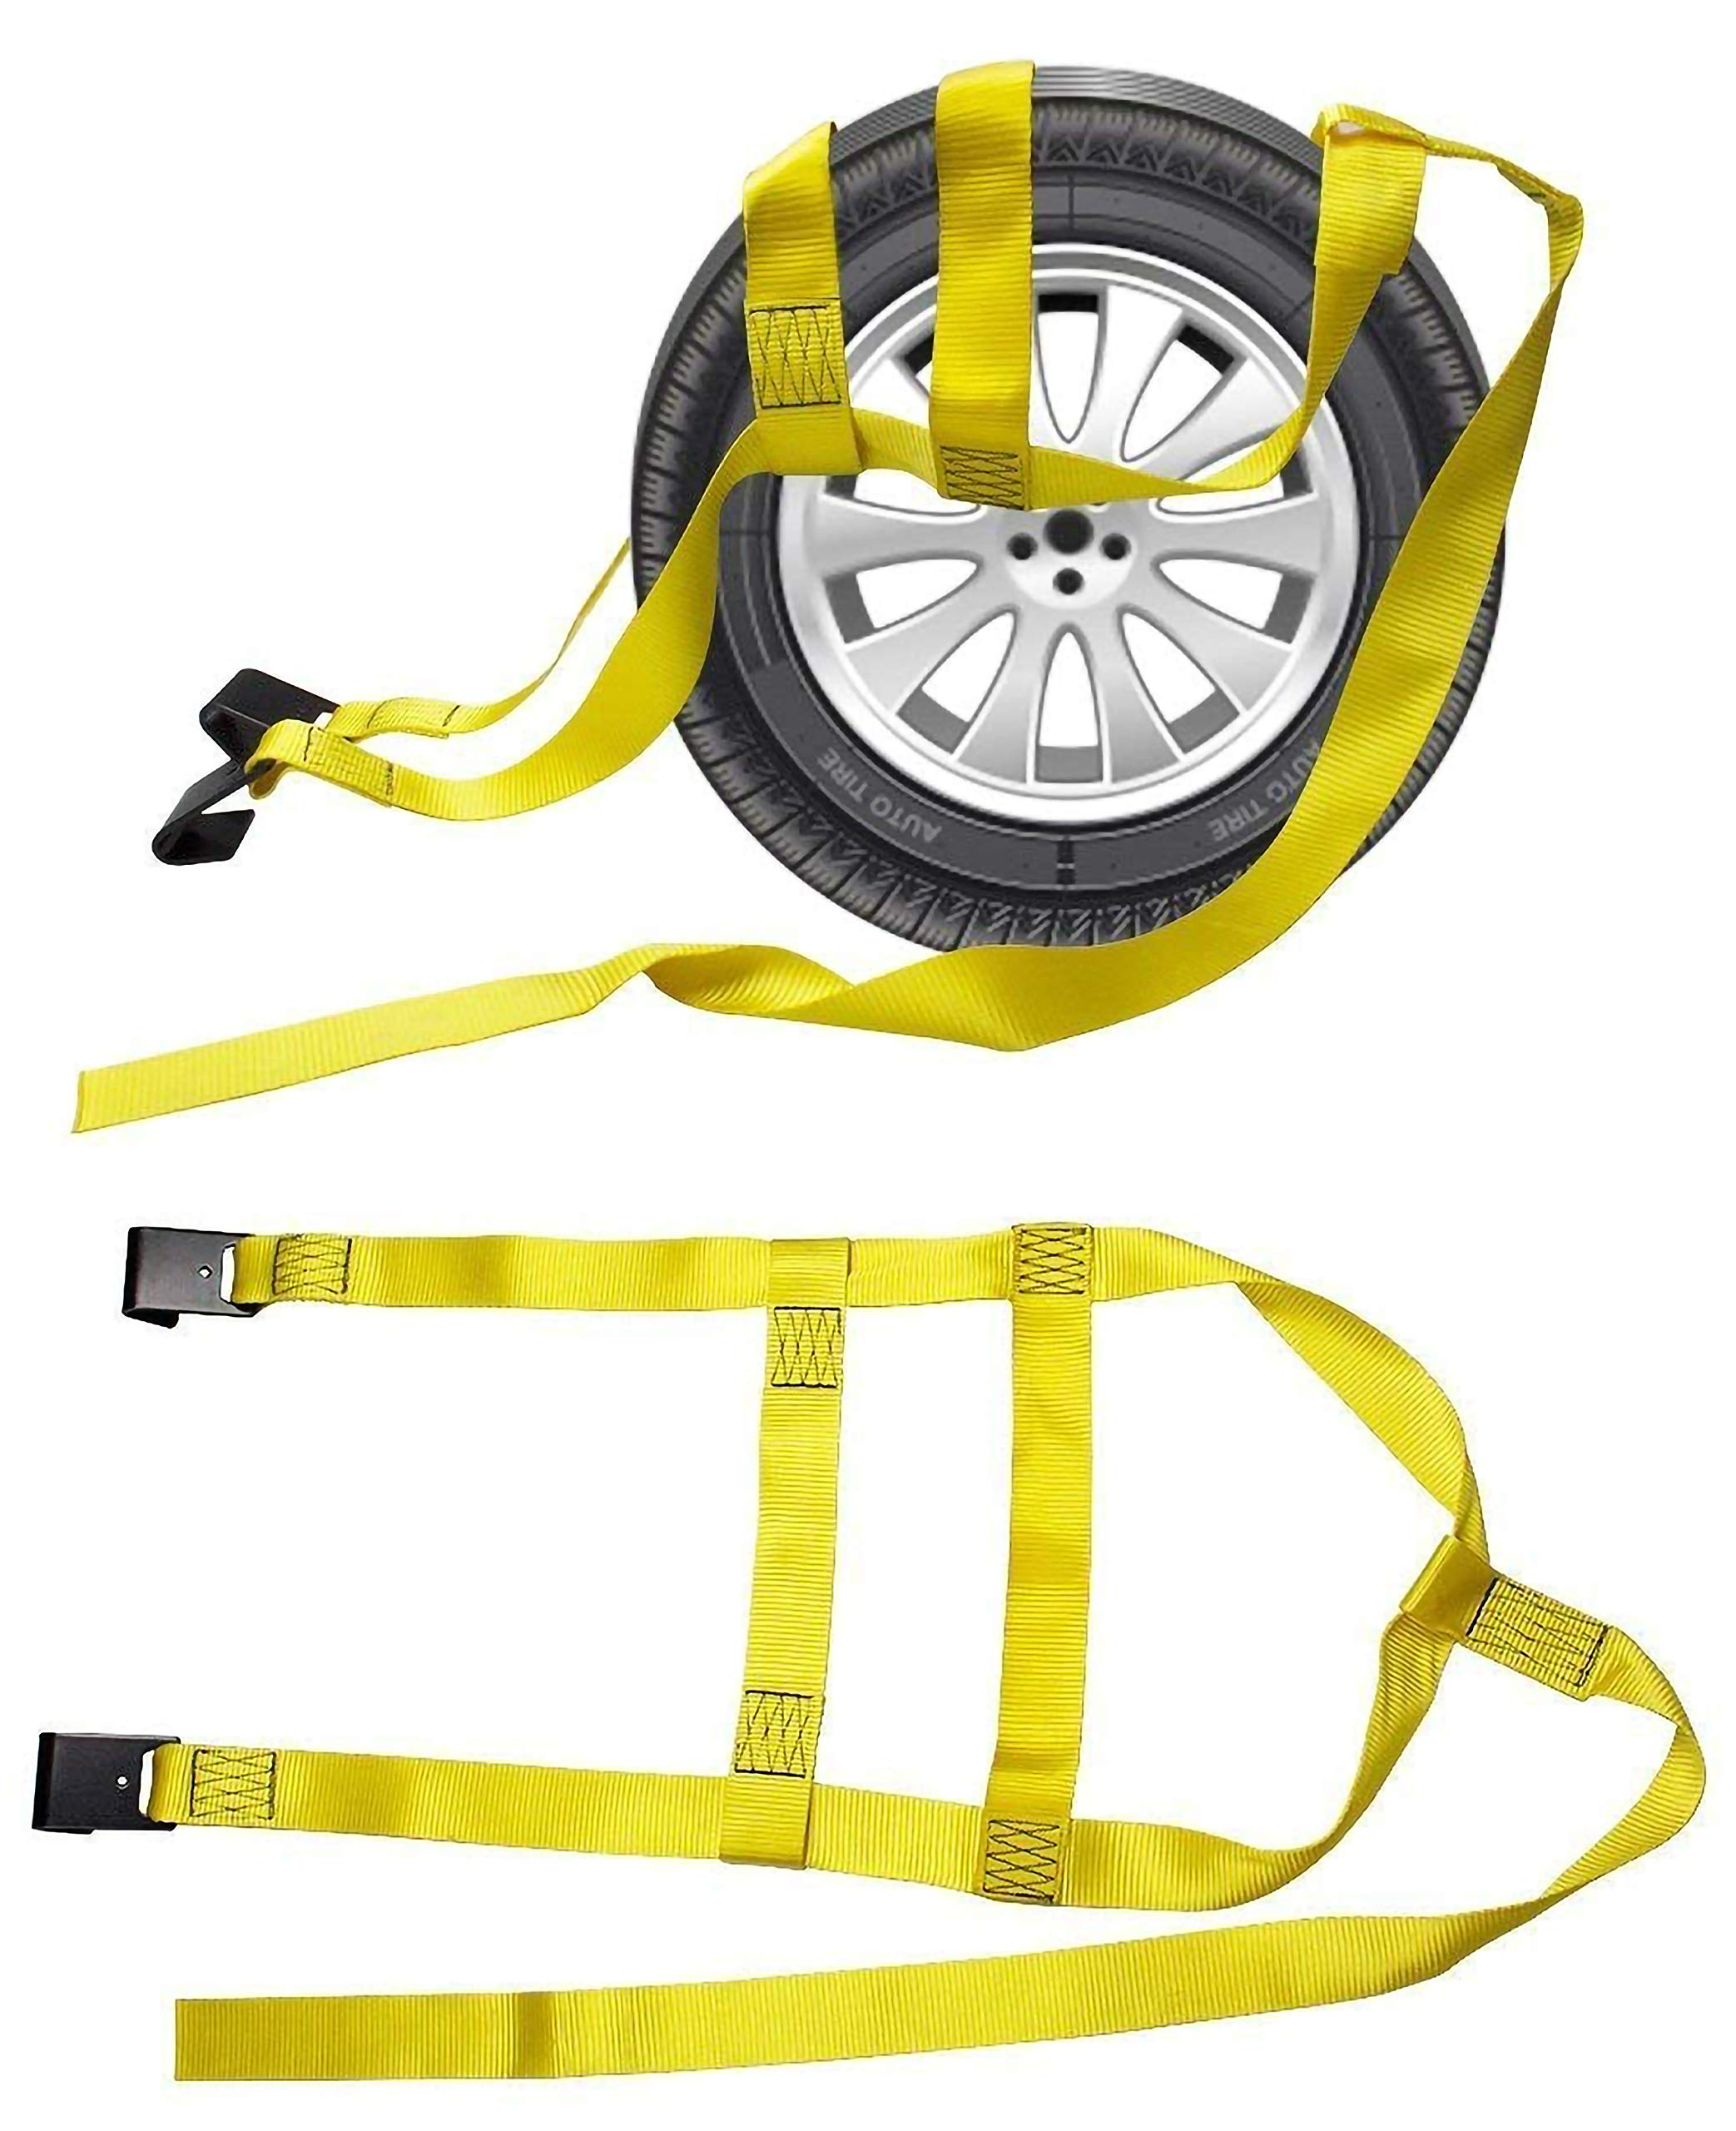 2X Car Basket Straps Adjustable Tow Dolly DEMCO Wheel Net Set Flat Hook Standard Wheels Fits (13-19 Inches, Yellow) by Noa Store